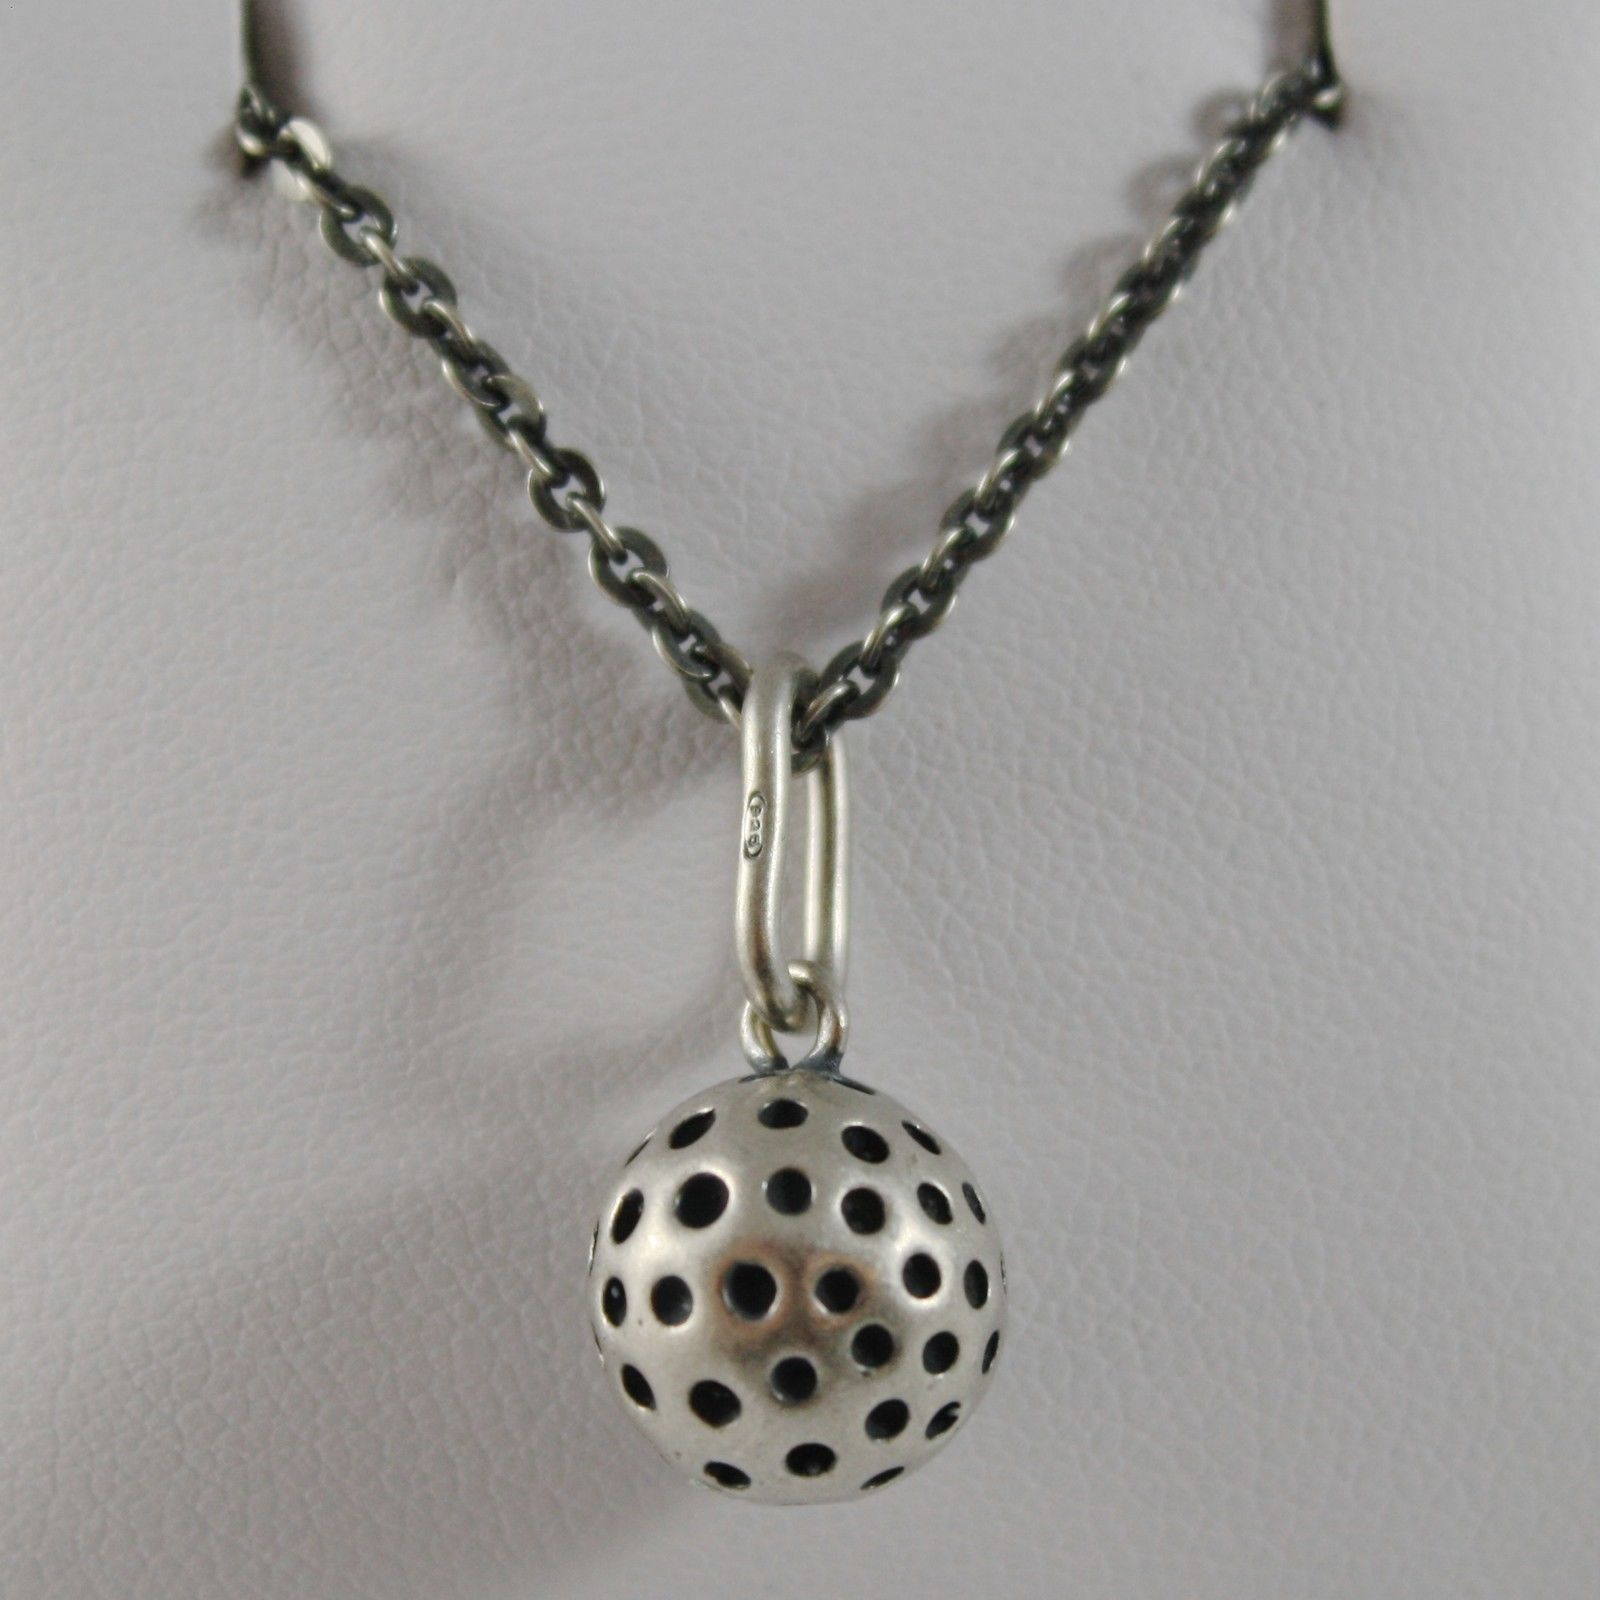 COLLANA IN ARGENTO 925 BRUNITO CON CIONDOLO A PALLINA DA GOLF MADE IN ITALY